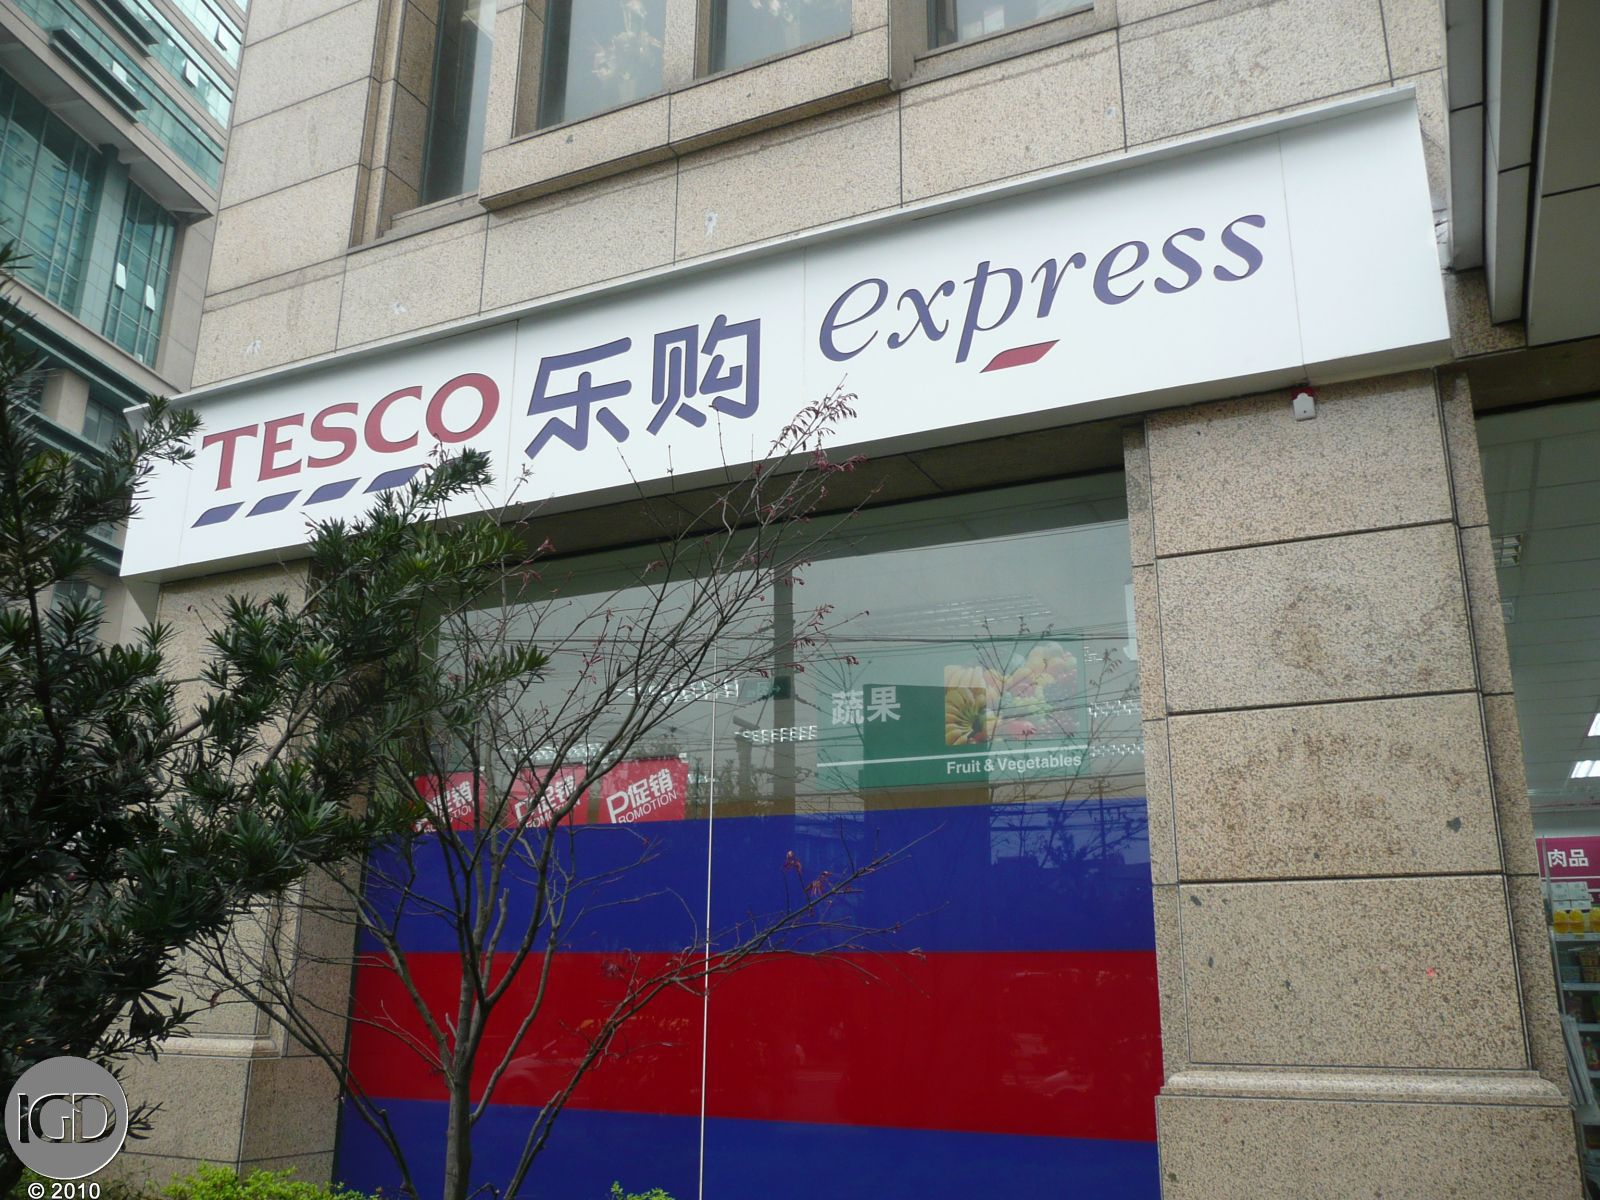 Store: Tesco Express   Photo Credit: IGD Retail